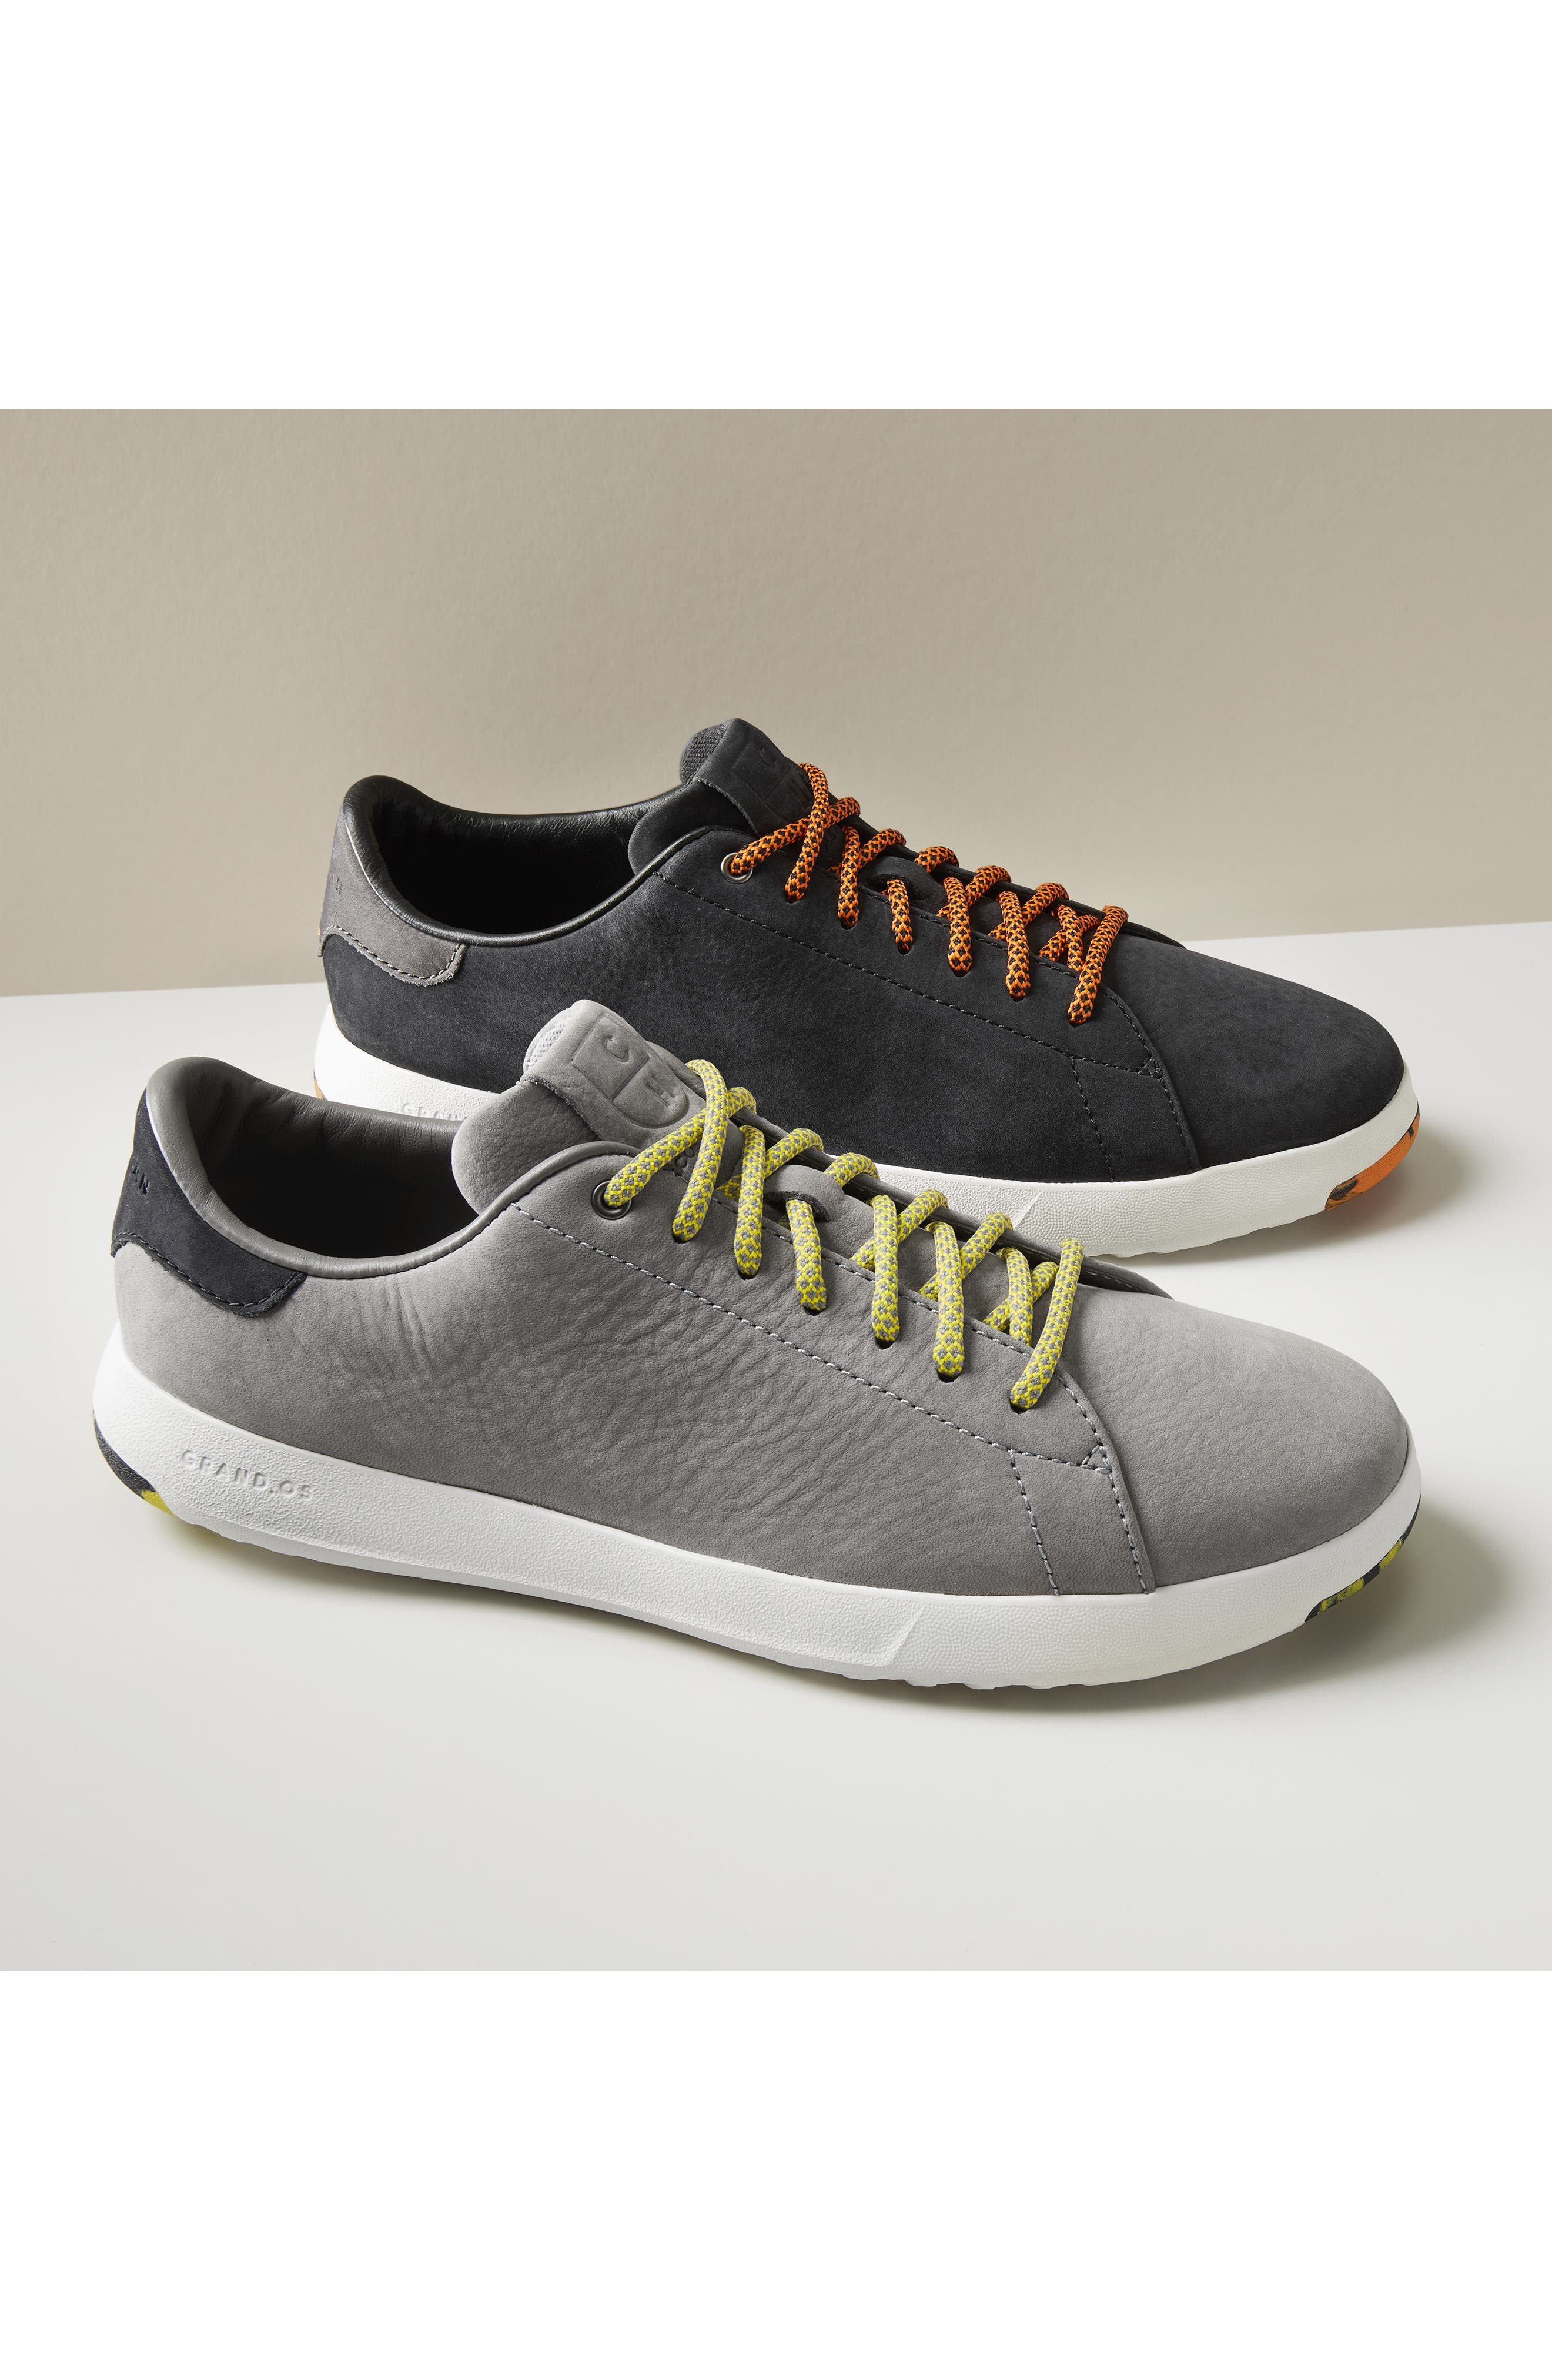 COLE HAAN, GrandPro Tennis Sneaker, Alternate thumbnail 16, color, GREY SUEDE